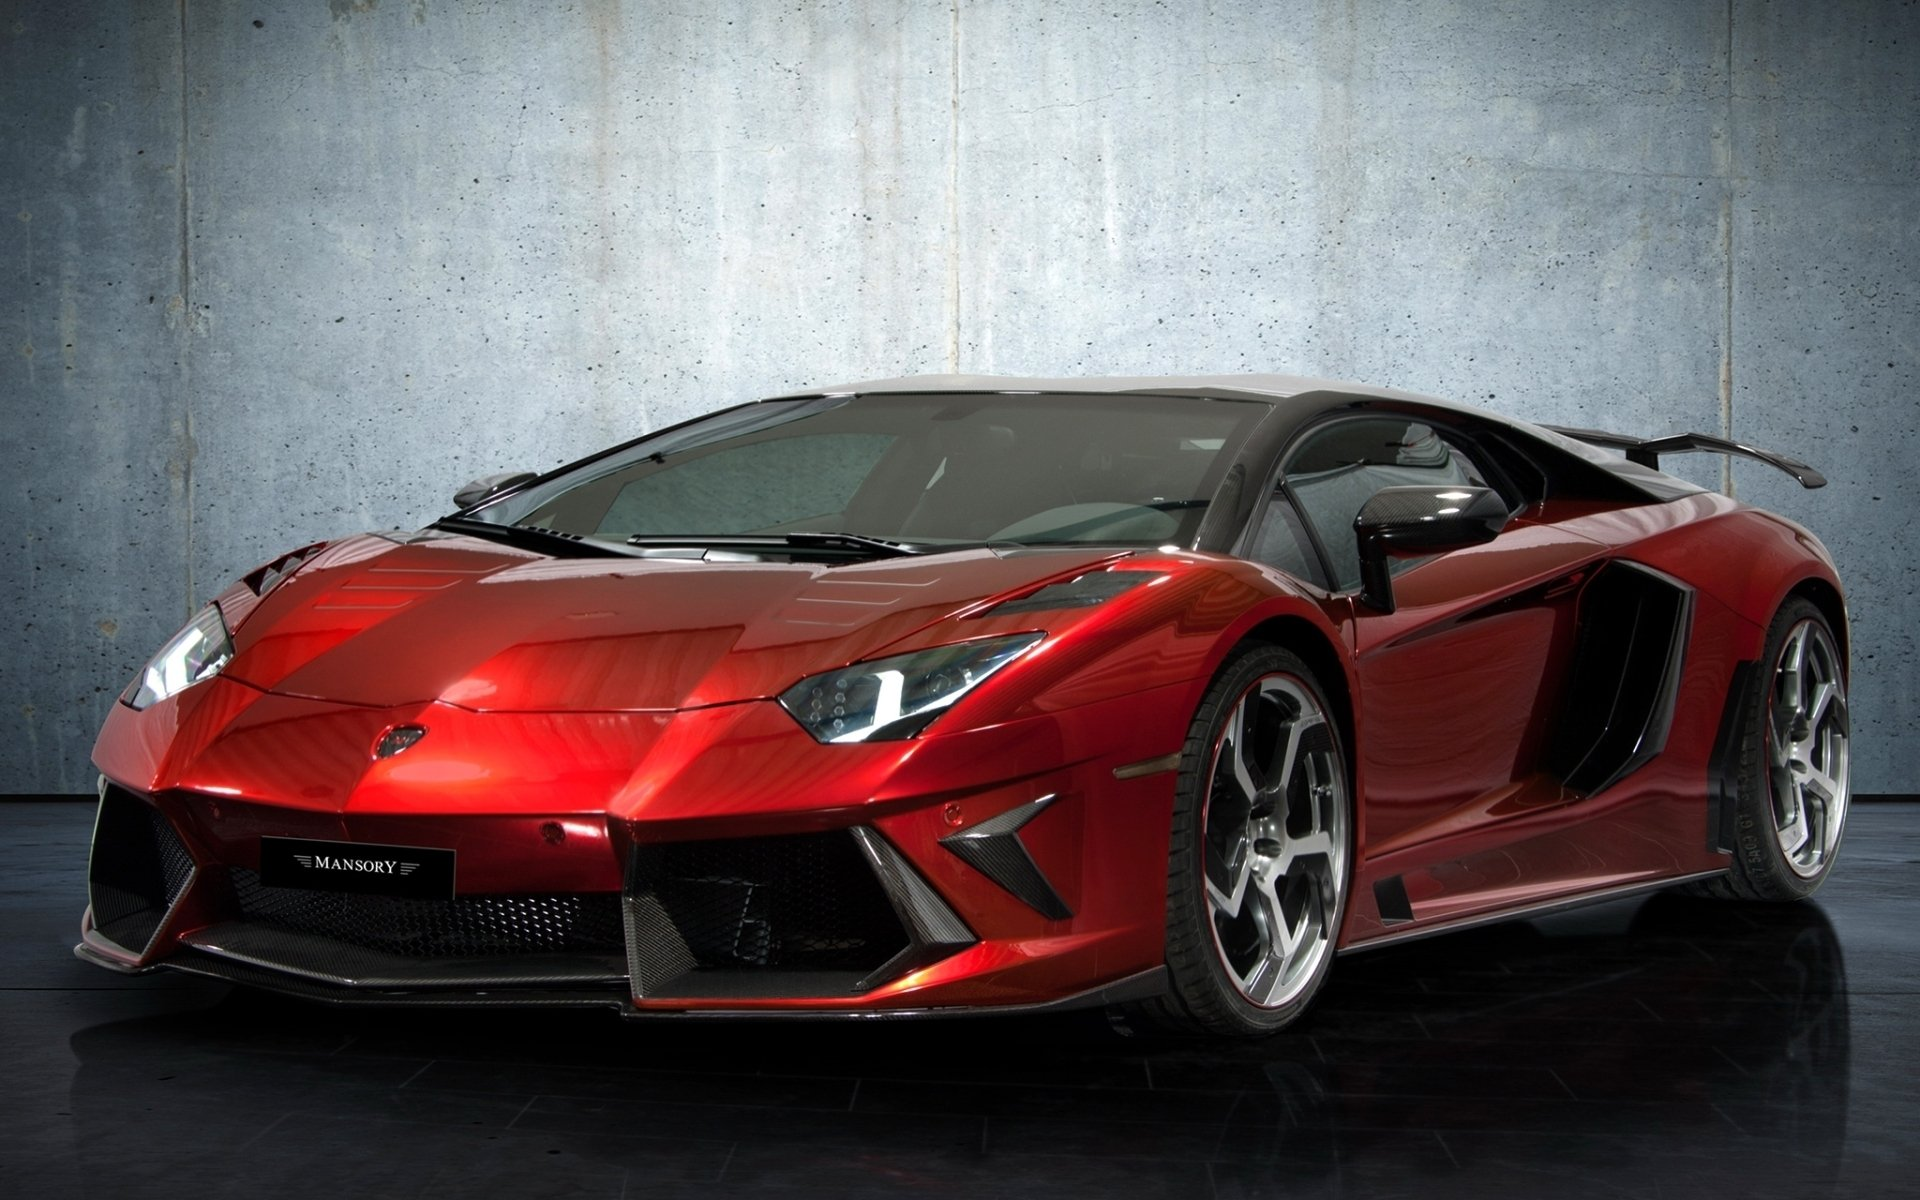 Hd wallpaper lamborghini - Hd Wallpaper Background Id 234003 1920x1200 Vehicles Lamborghini